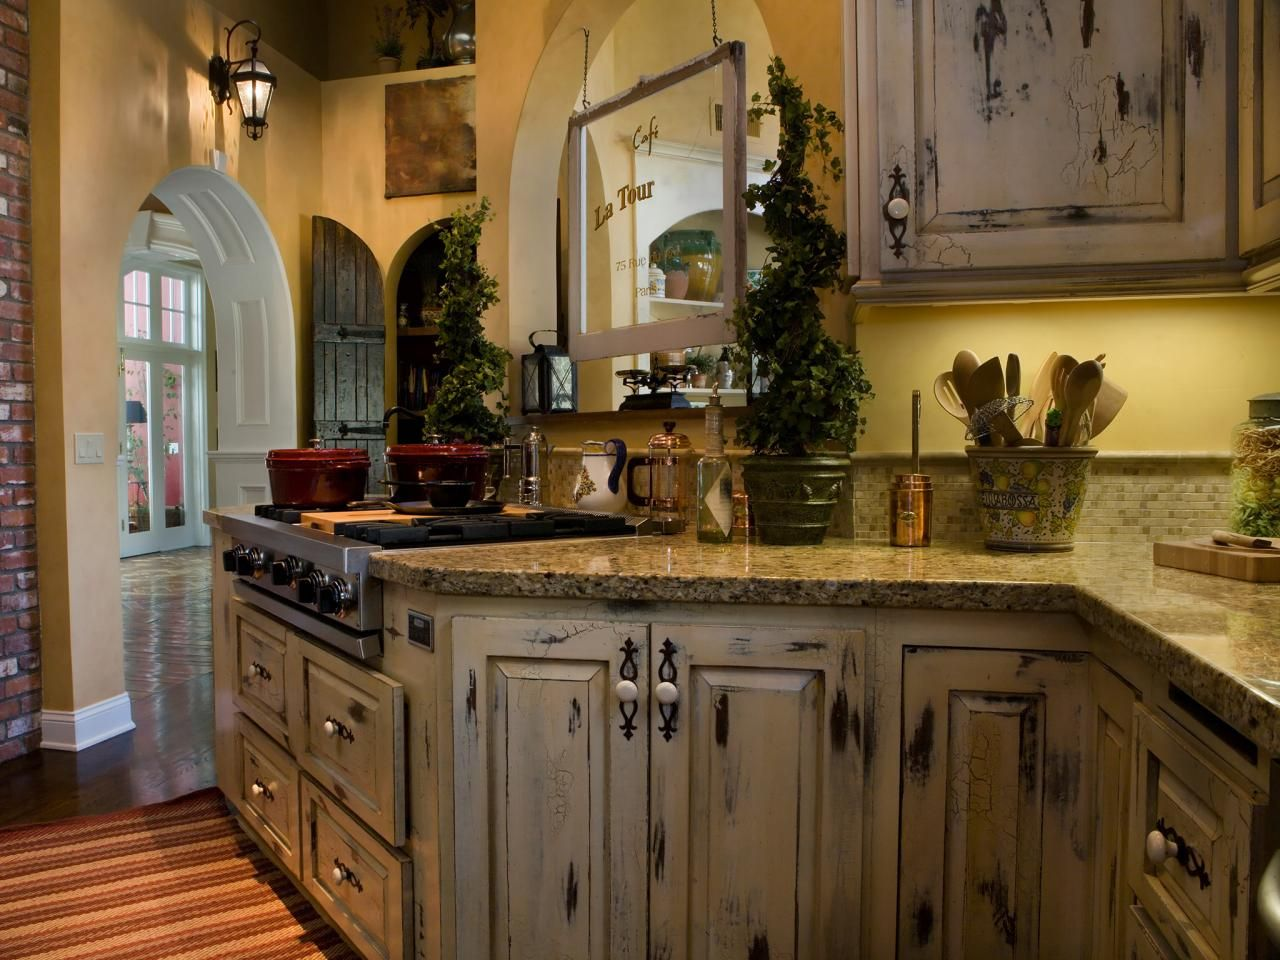 Distressed Kitchen Cabinets: Pictures & Ideas From - Distressed Kitchen Cabinets: Pictures & Ideas From Hgtv